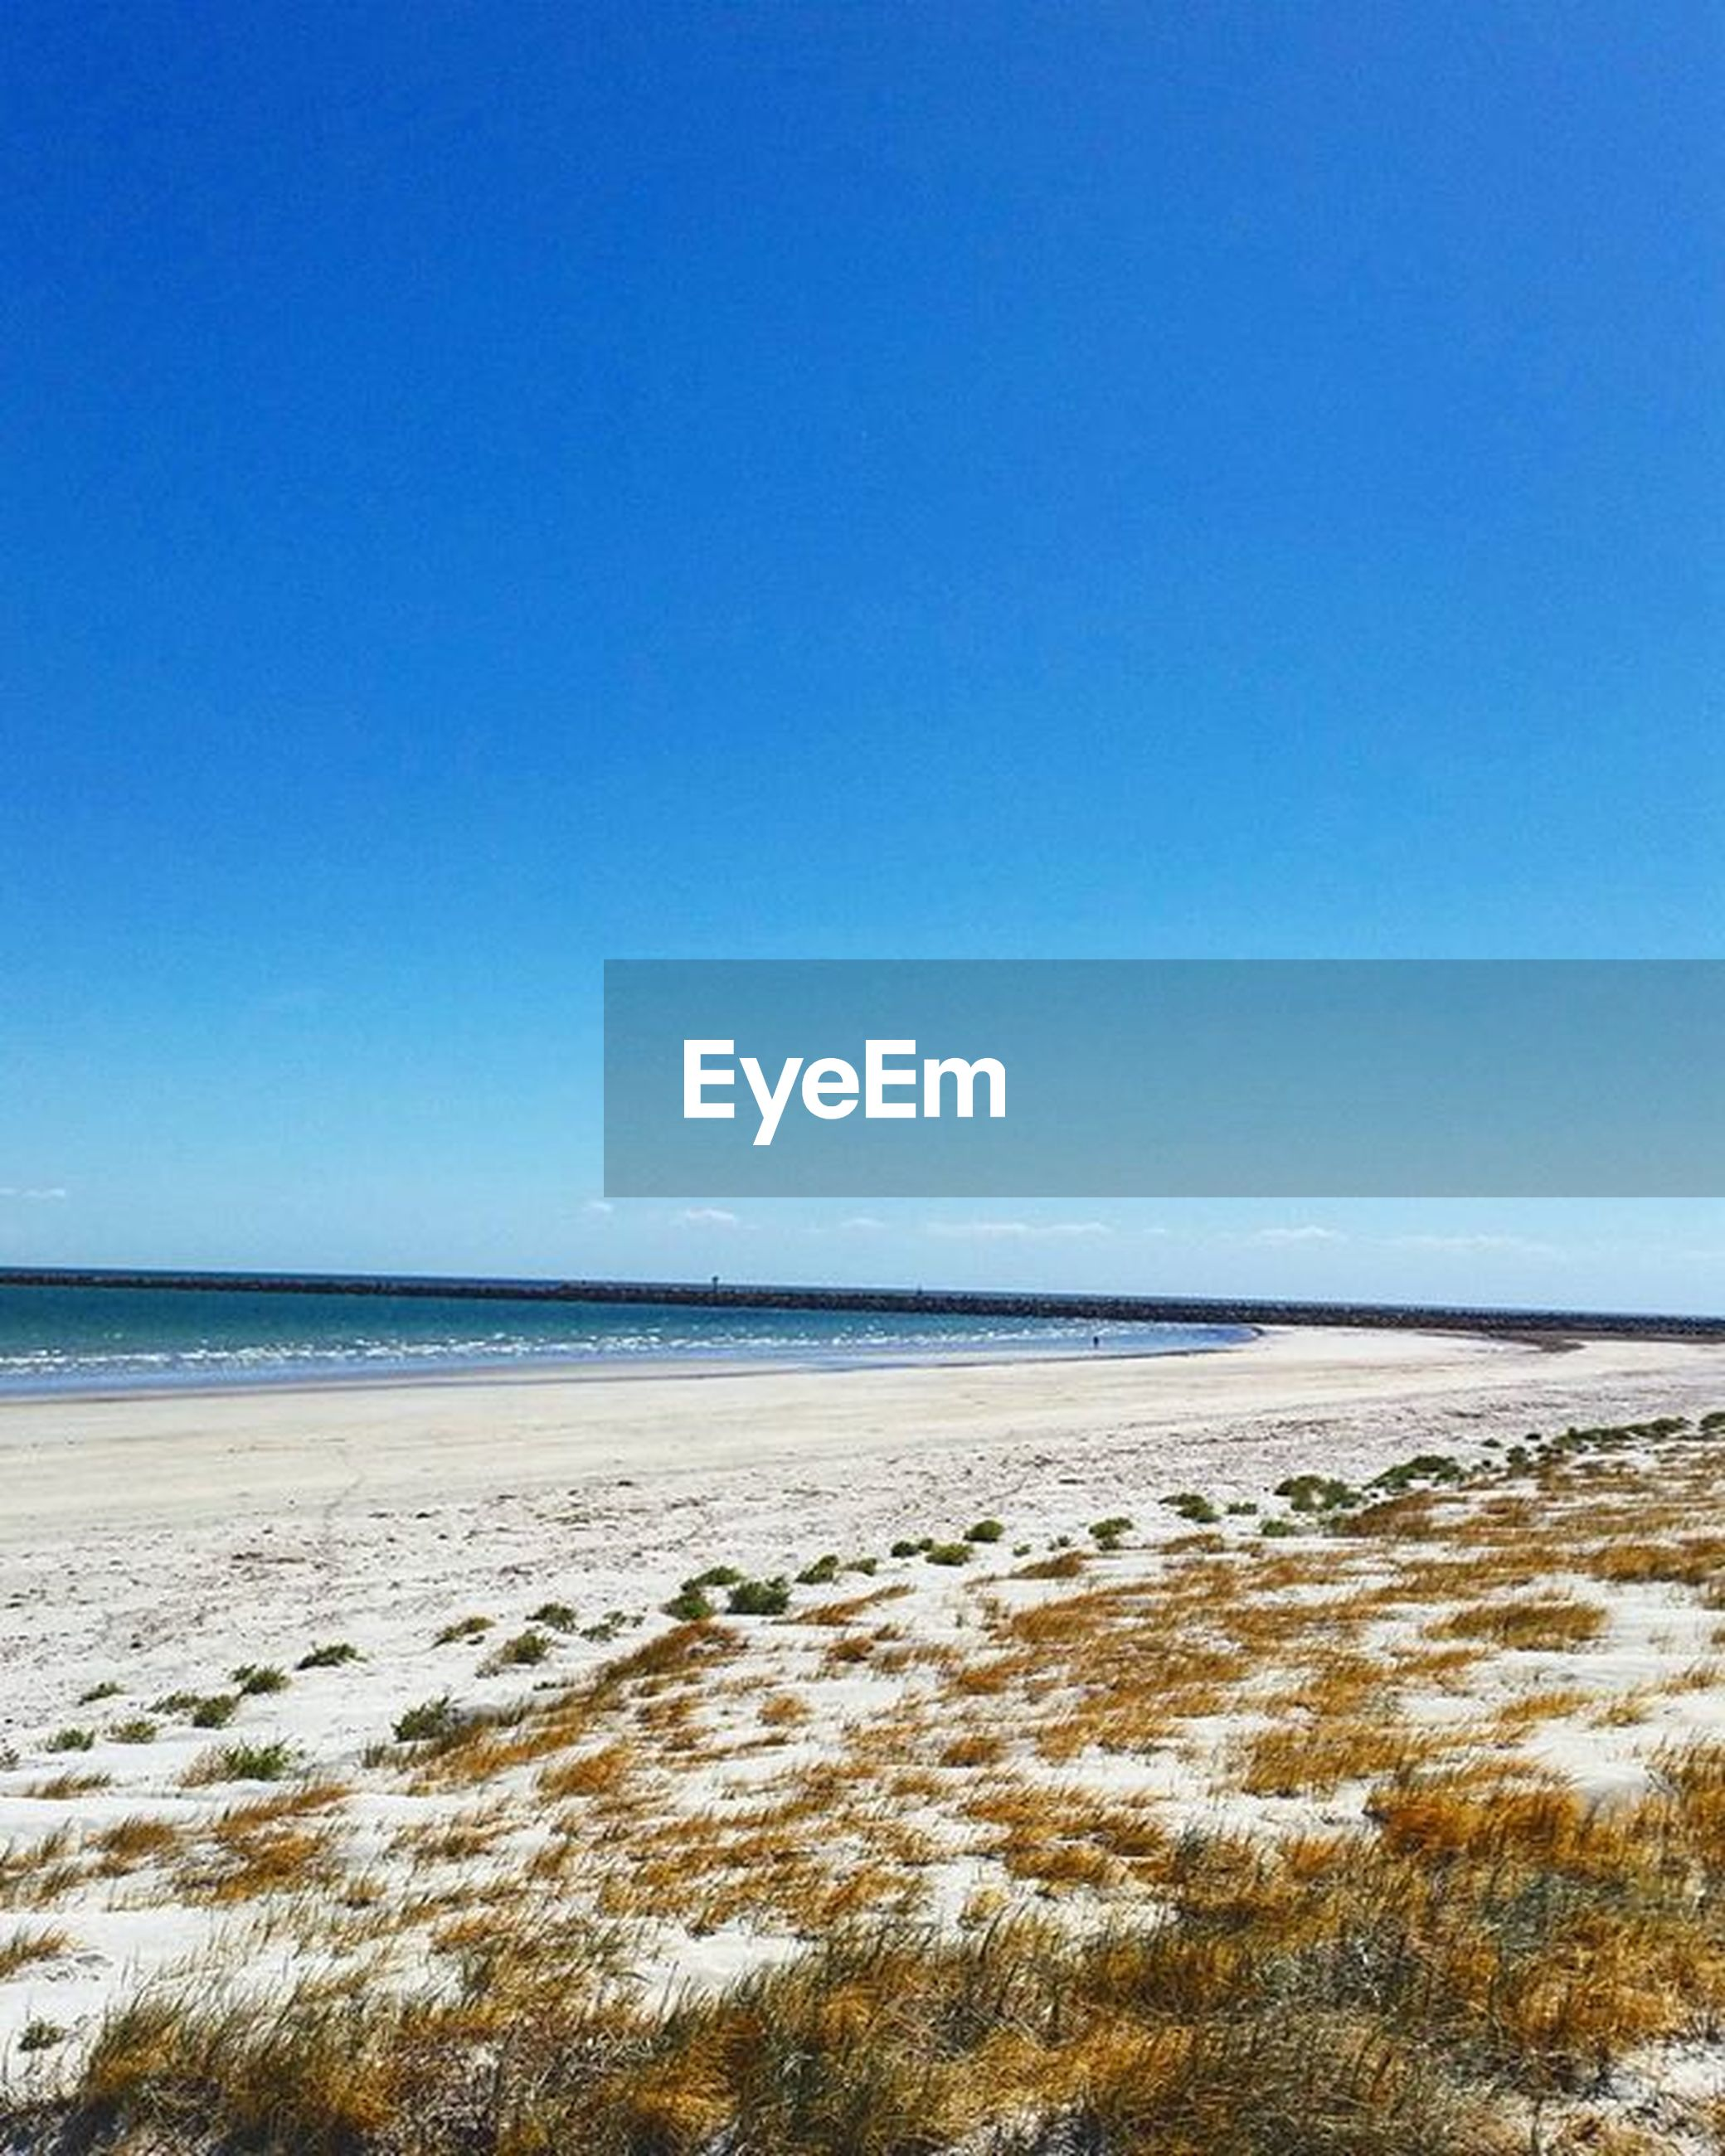 clear sky, copy space, water, sea, blue, beach, tranquil scene, tranquility, scenics, beauty in nature, sand, shore, horizon over water, nature, idyllic, day, remote, non-urban scene, outdoors, coastline